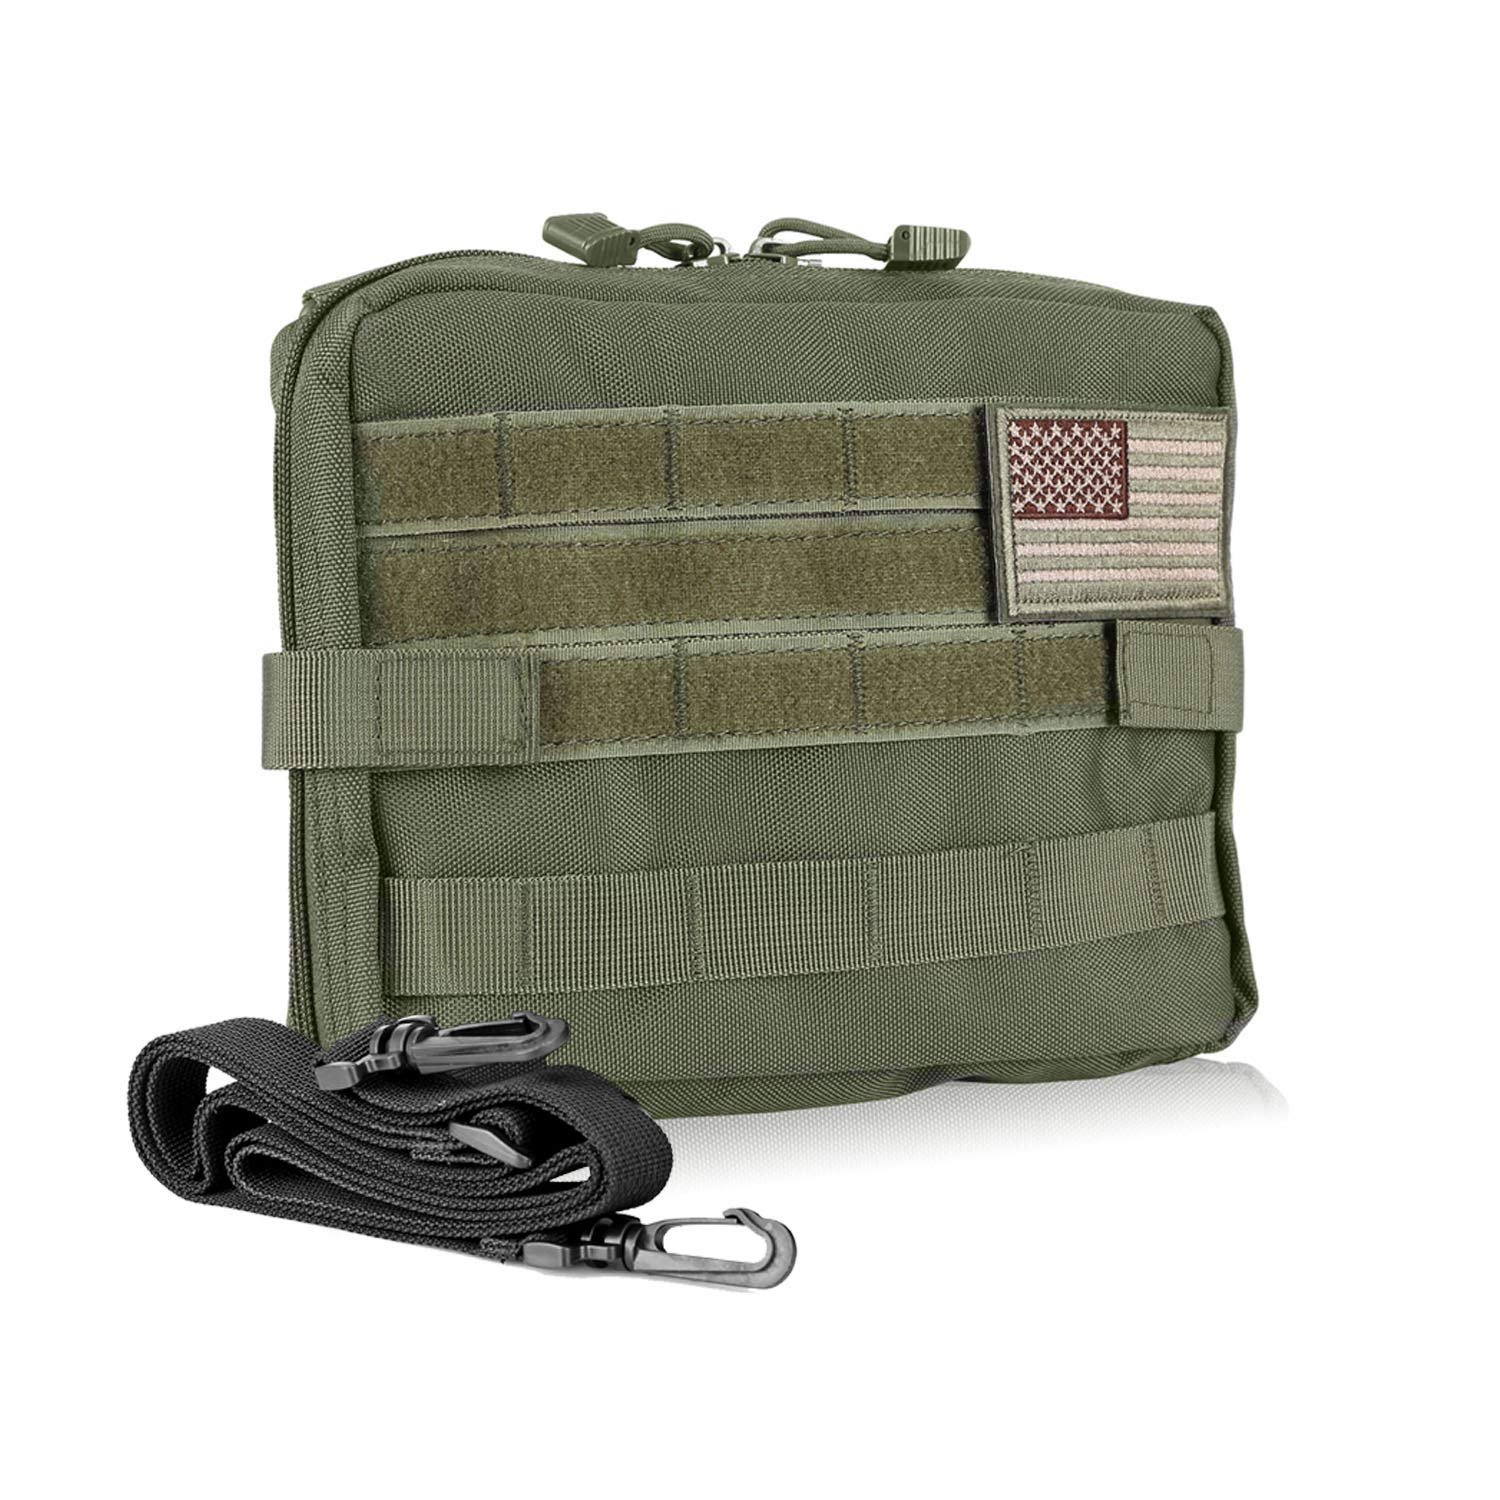 DELSWIN Tactical Molle Pouch - 1000D Nylon EDC Modular Utility Pouch Military Tool Holder